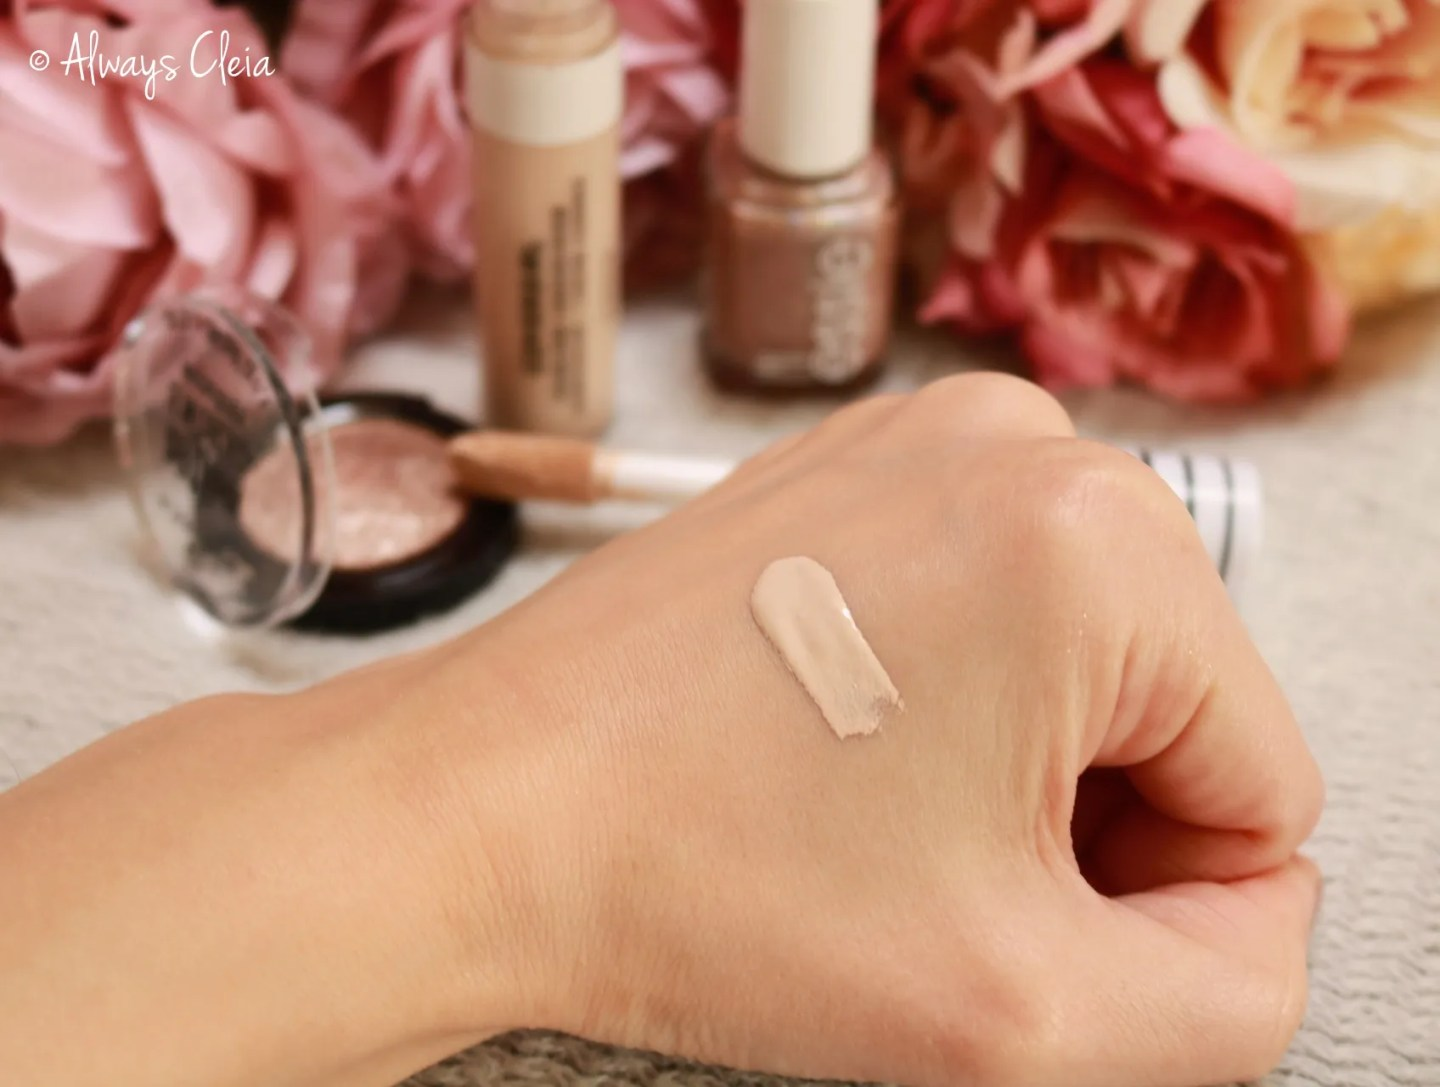 Covergirl Trublend Undercover Concealer Swatches